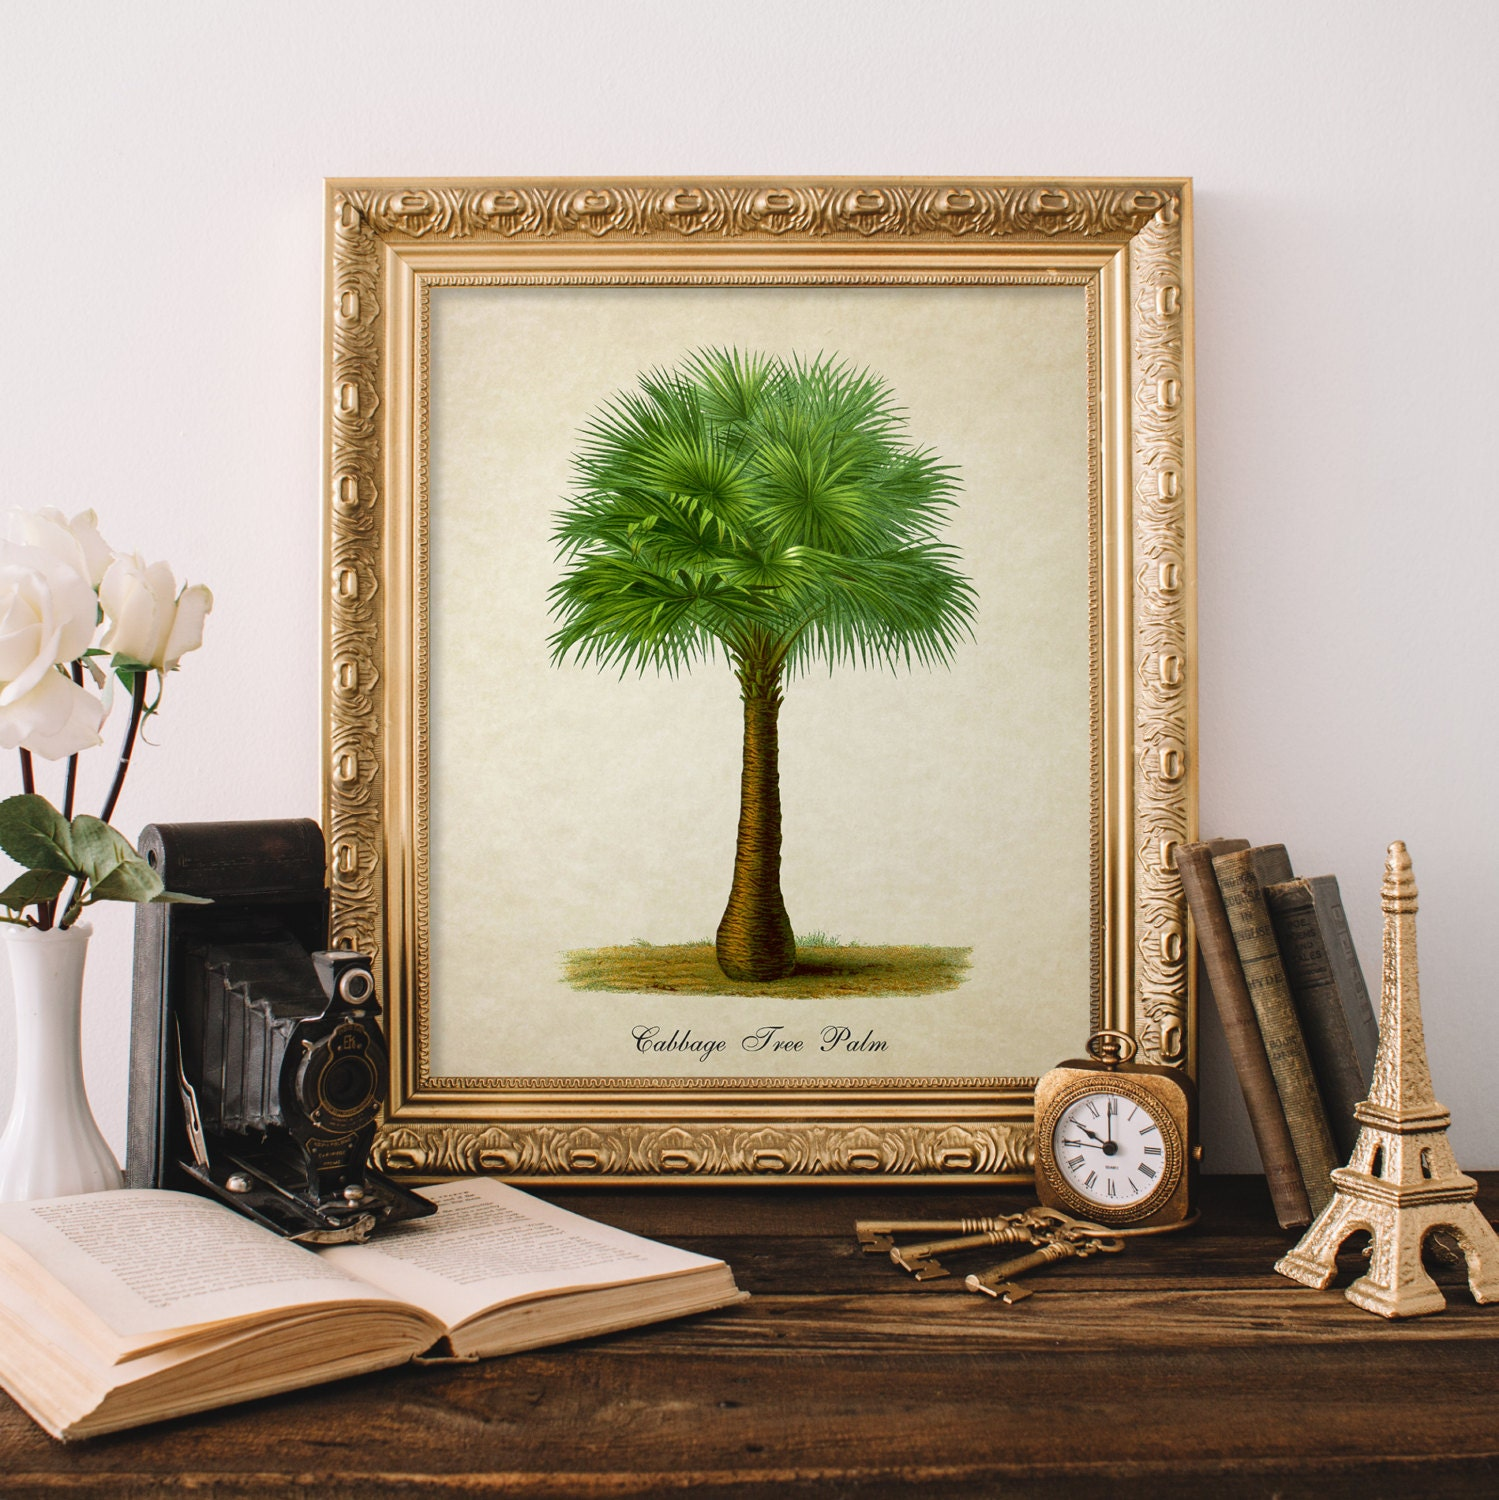 Https Www Etsy Com Listing 448655594 Palm Botanical Print Cabbage Tree Palm